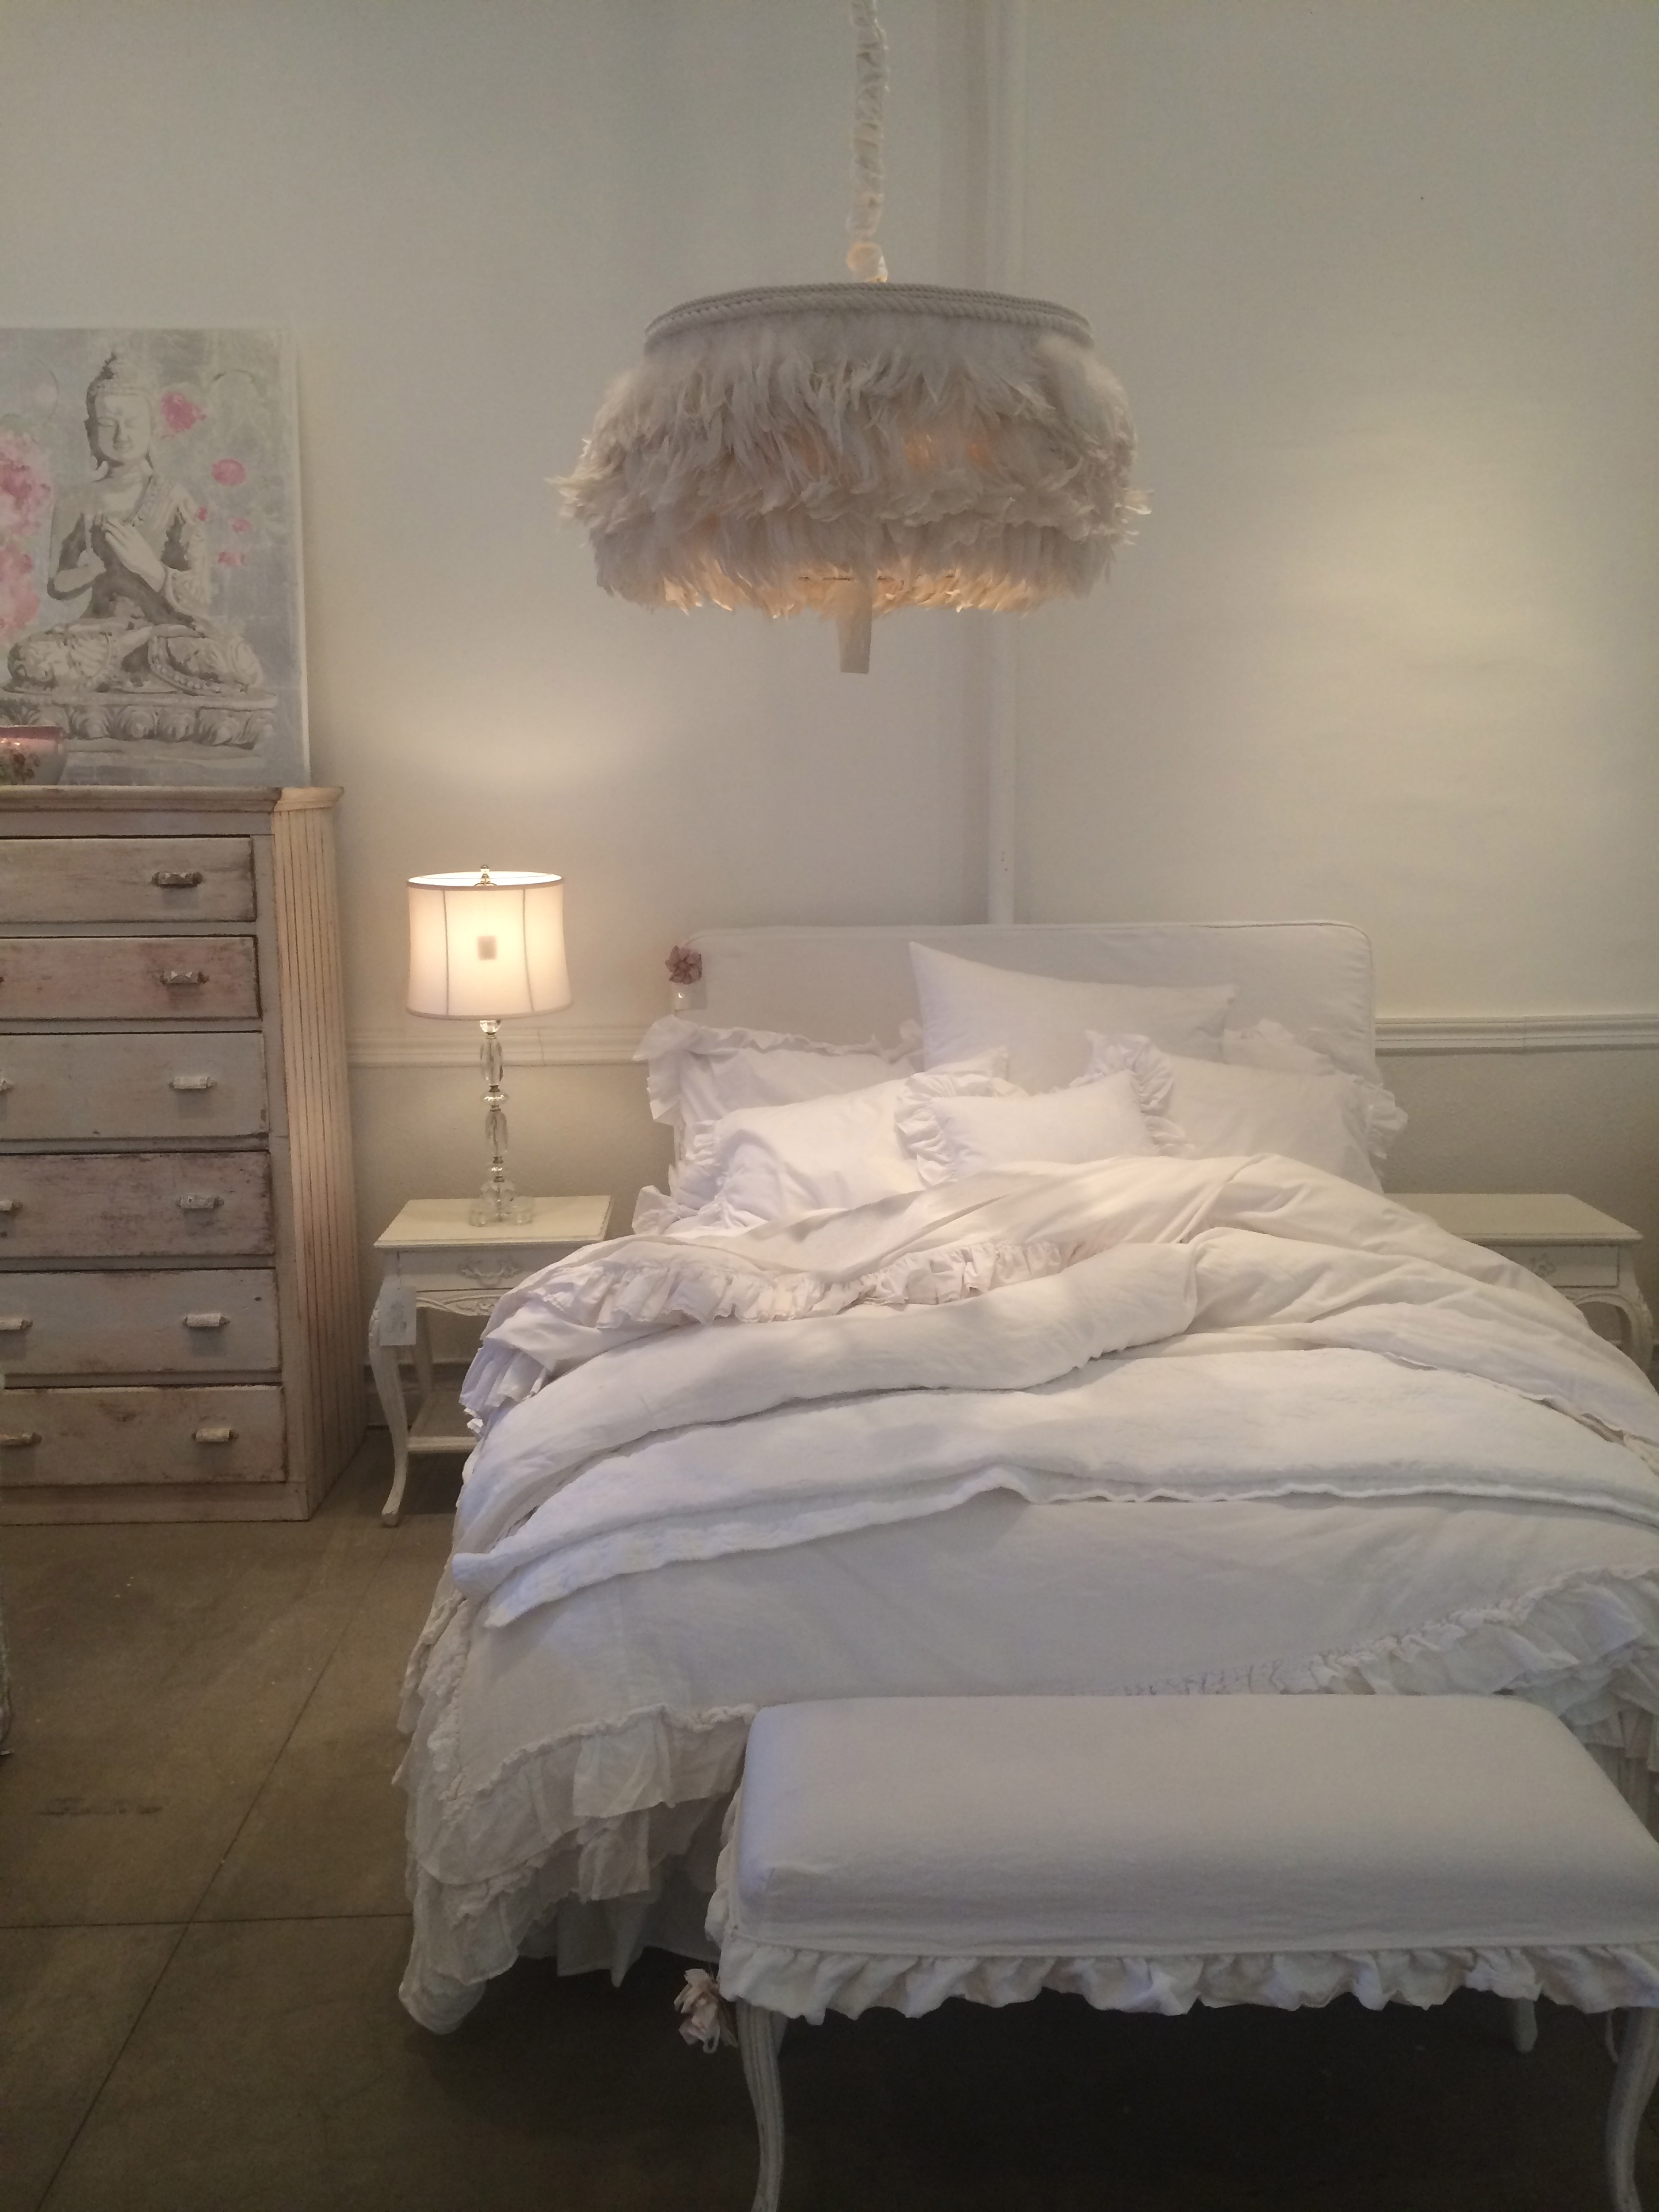 Getting my white vintage fix at Shabby Chic in Soho.That lamp...